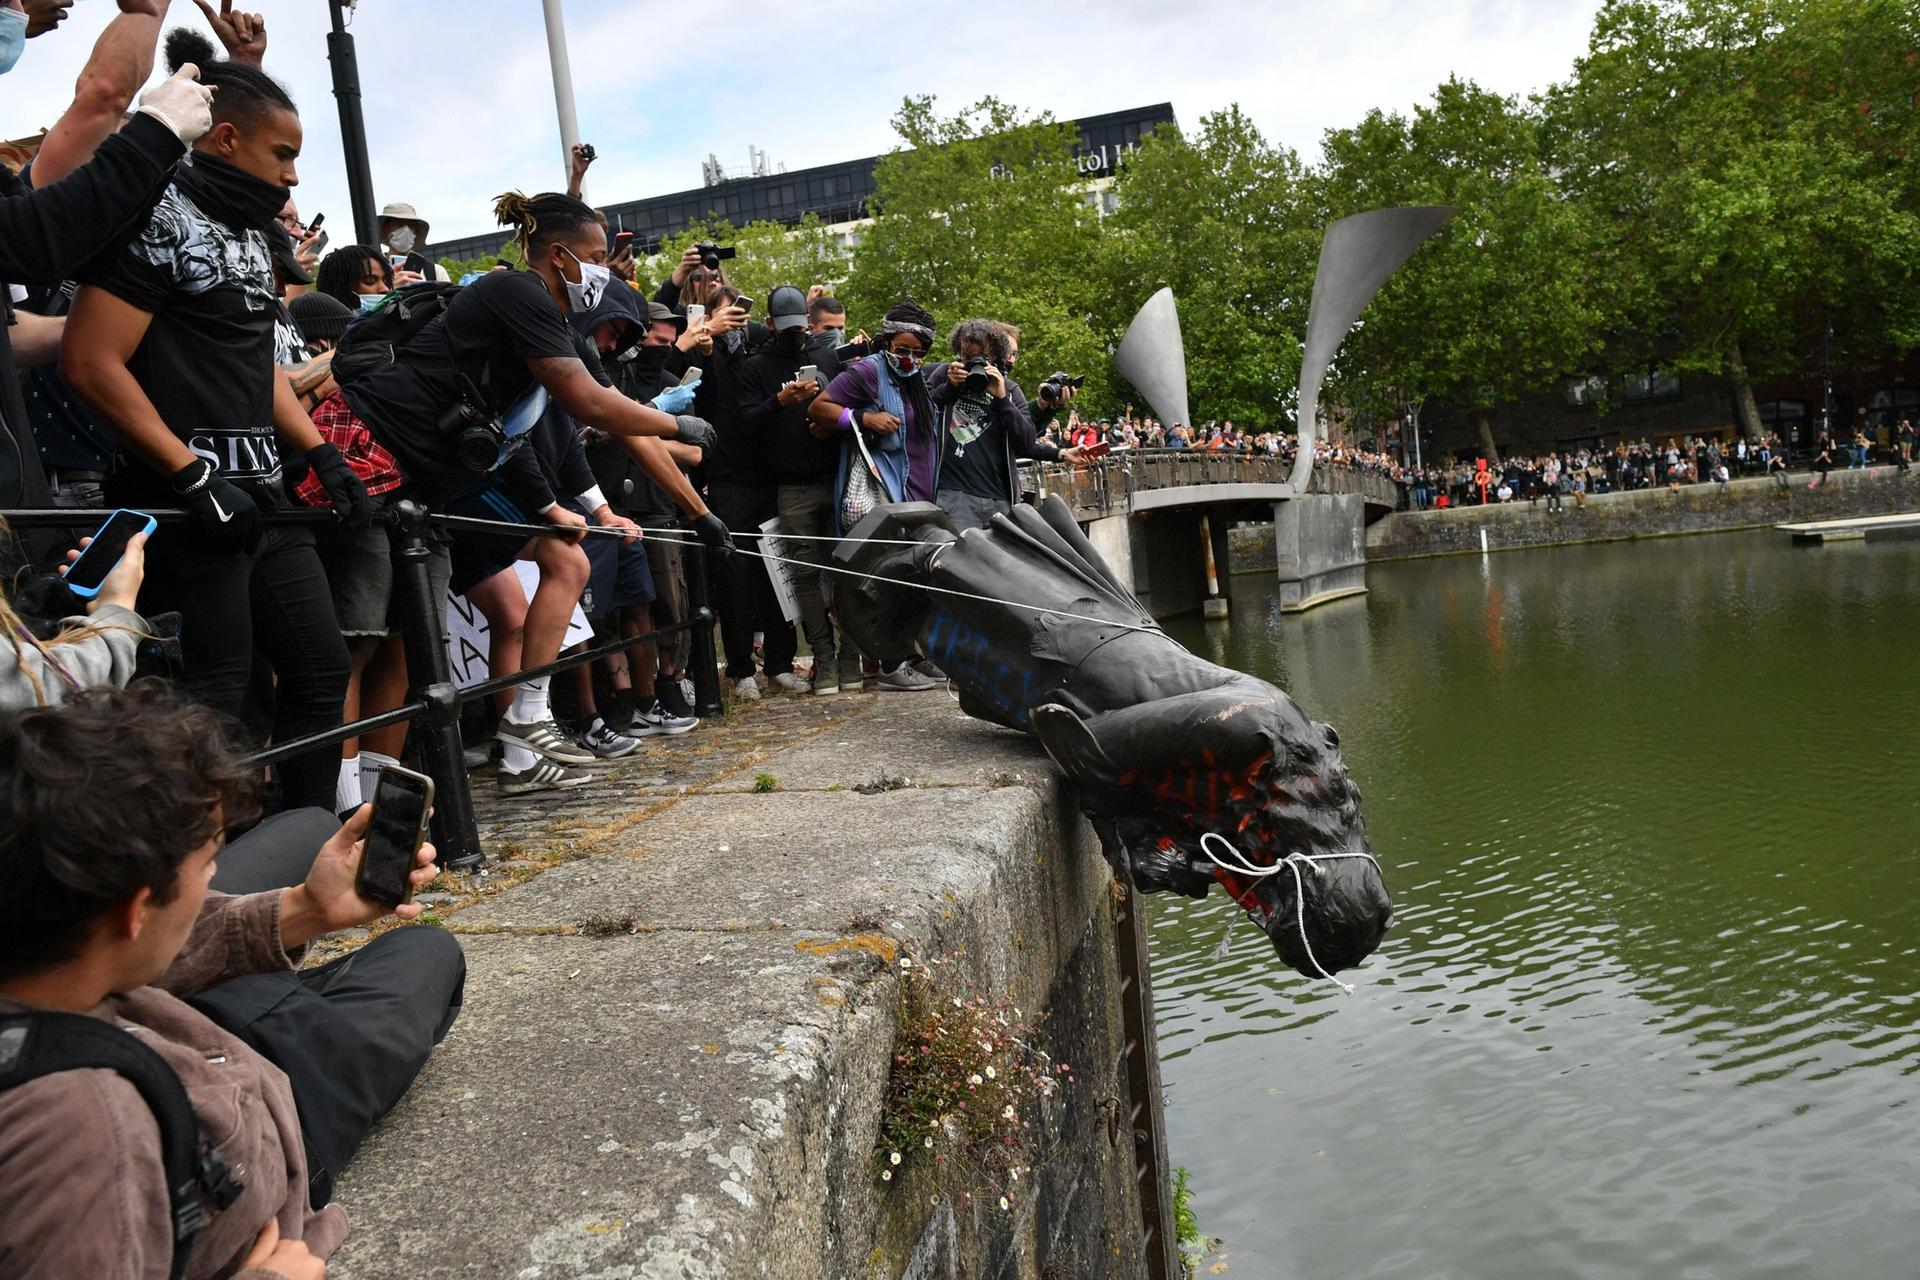 Protesters throw the statue of Edward Colston into Bristol harbour during a Black Lives Matter protest rally, in memory of George Floyd who was killed on 25 May while in police custody in the US city of Minneapolis © PA Images / Alamy Stock Photo